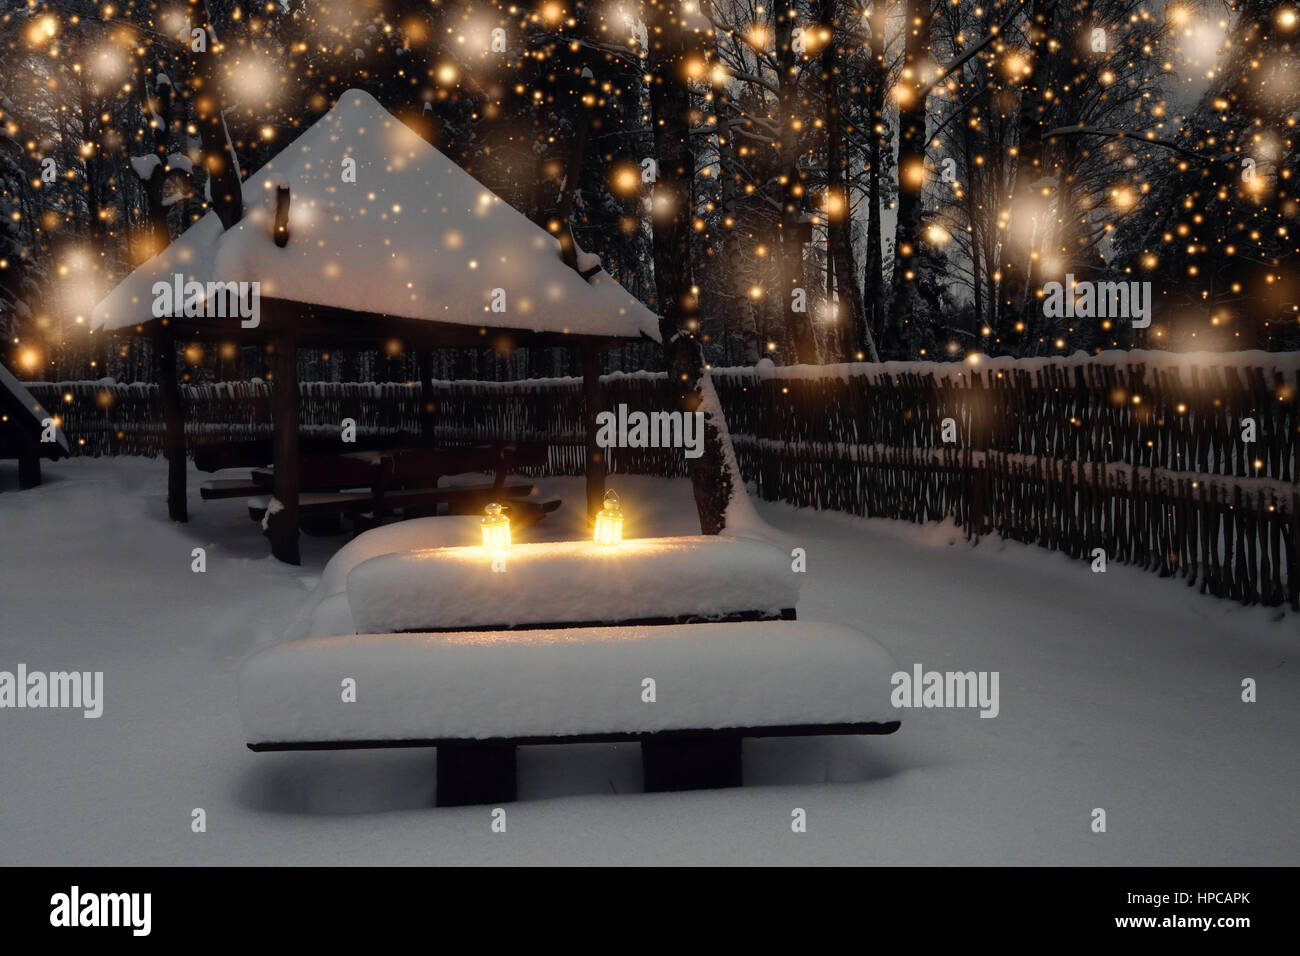 Christmas Lights On Winter Night Background Snowy Landscape Xmas Snowfall In Park